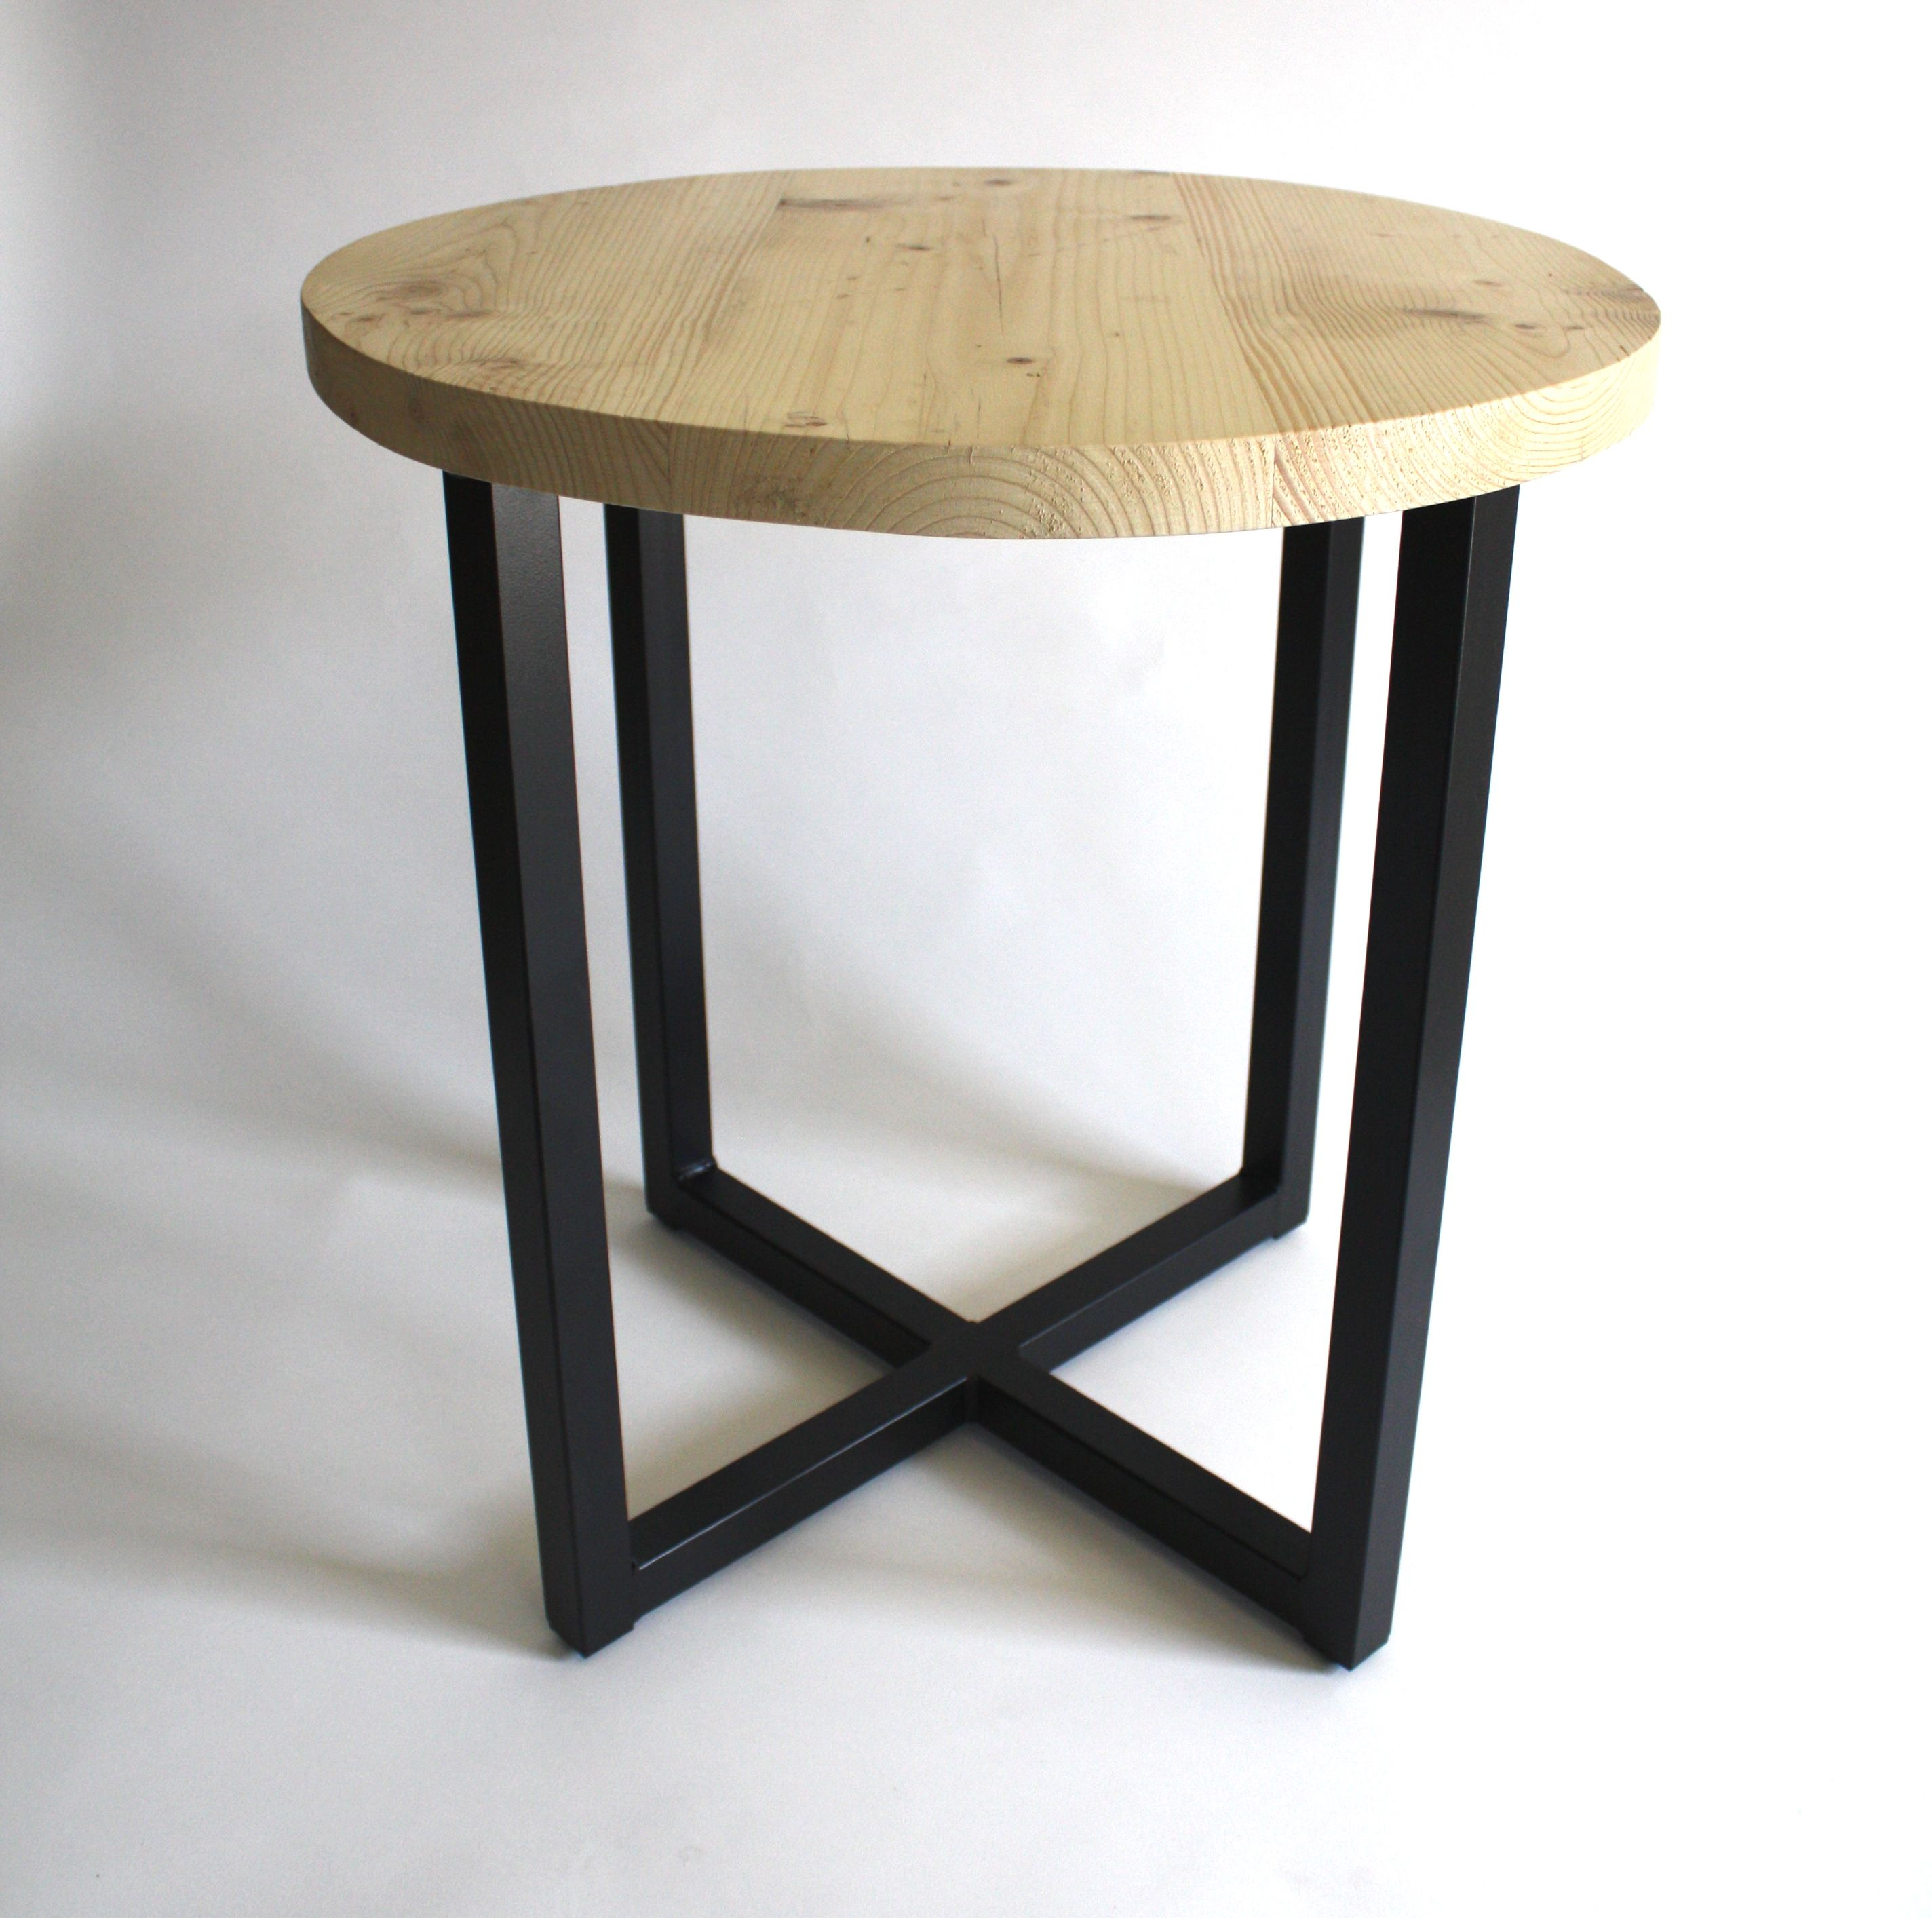 Simple Design Makes This Small Table Big On Statement The Banco